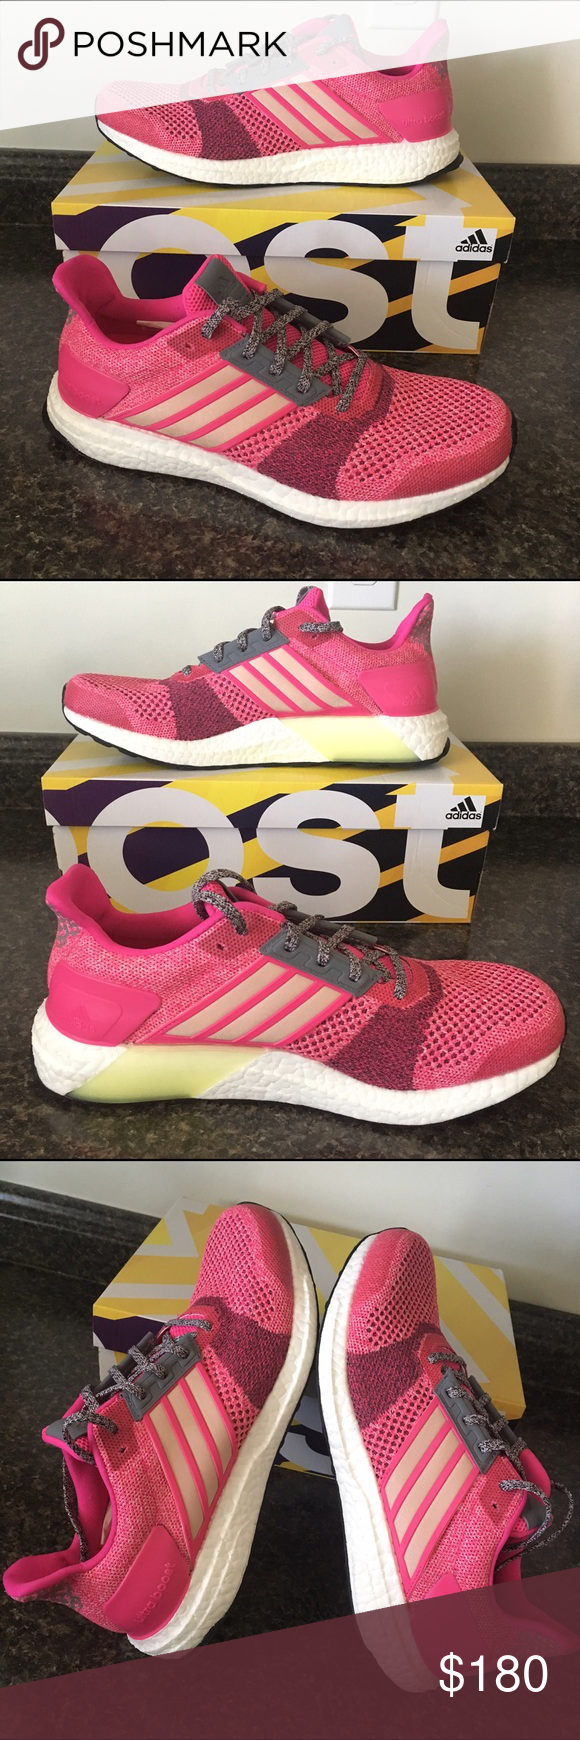 super popular 4d101 121f1 ADIDAS ULTRA BOOST Hot Pink Gold Sparkle Sneakers Brand New With Box 💕  Ultra Cute Adidas